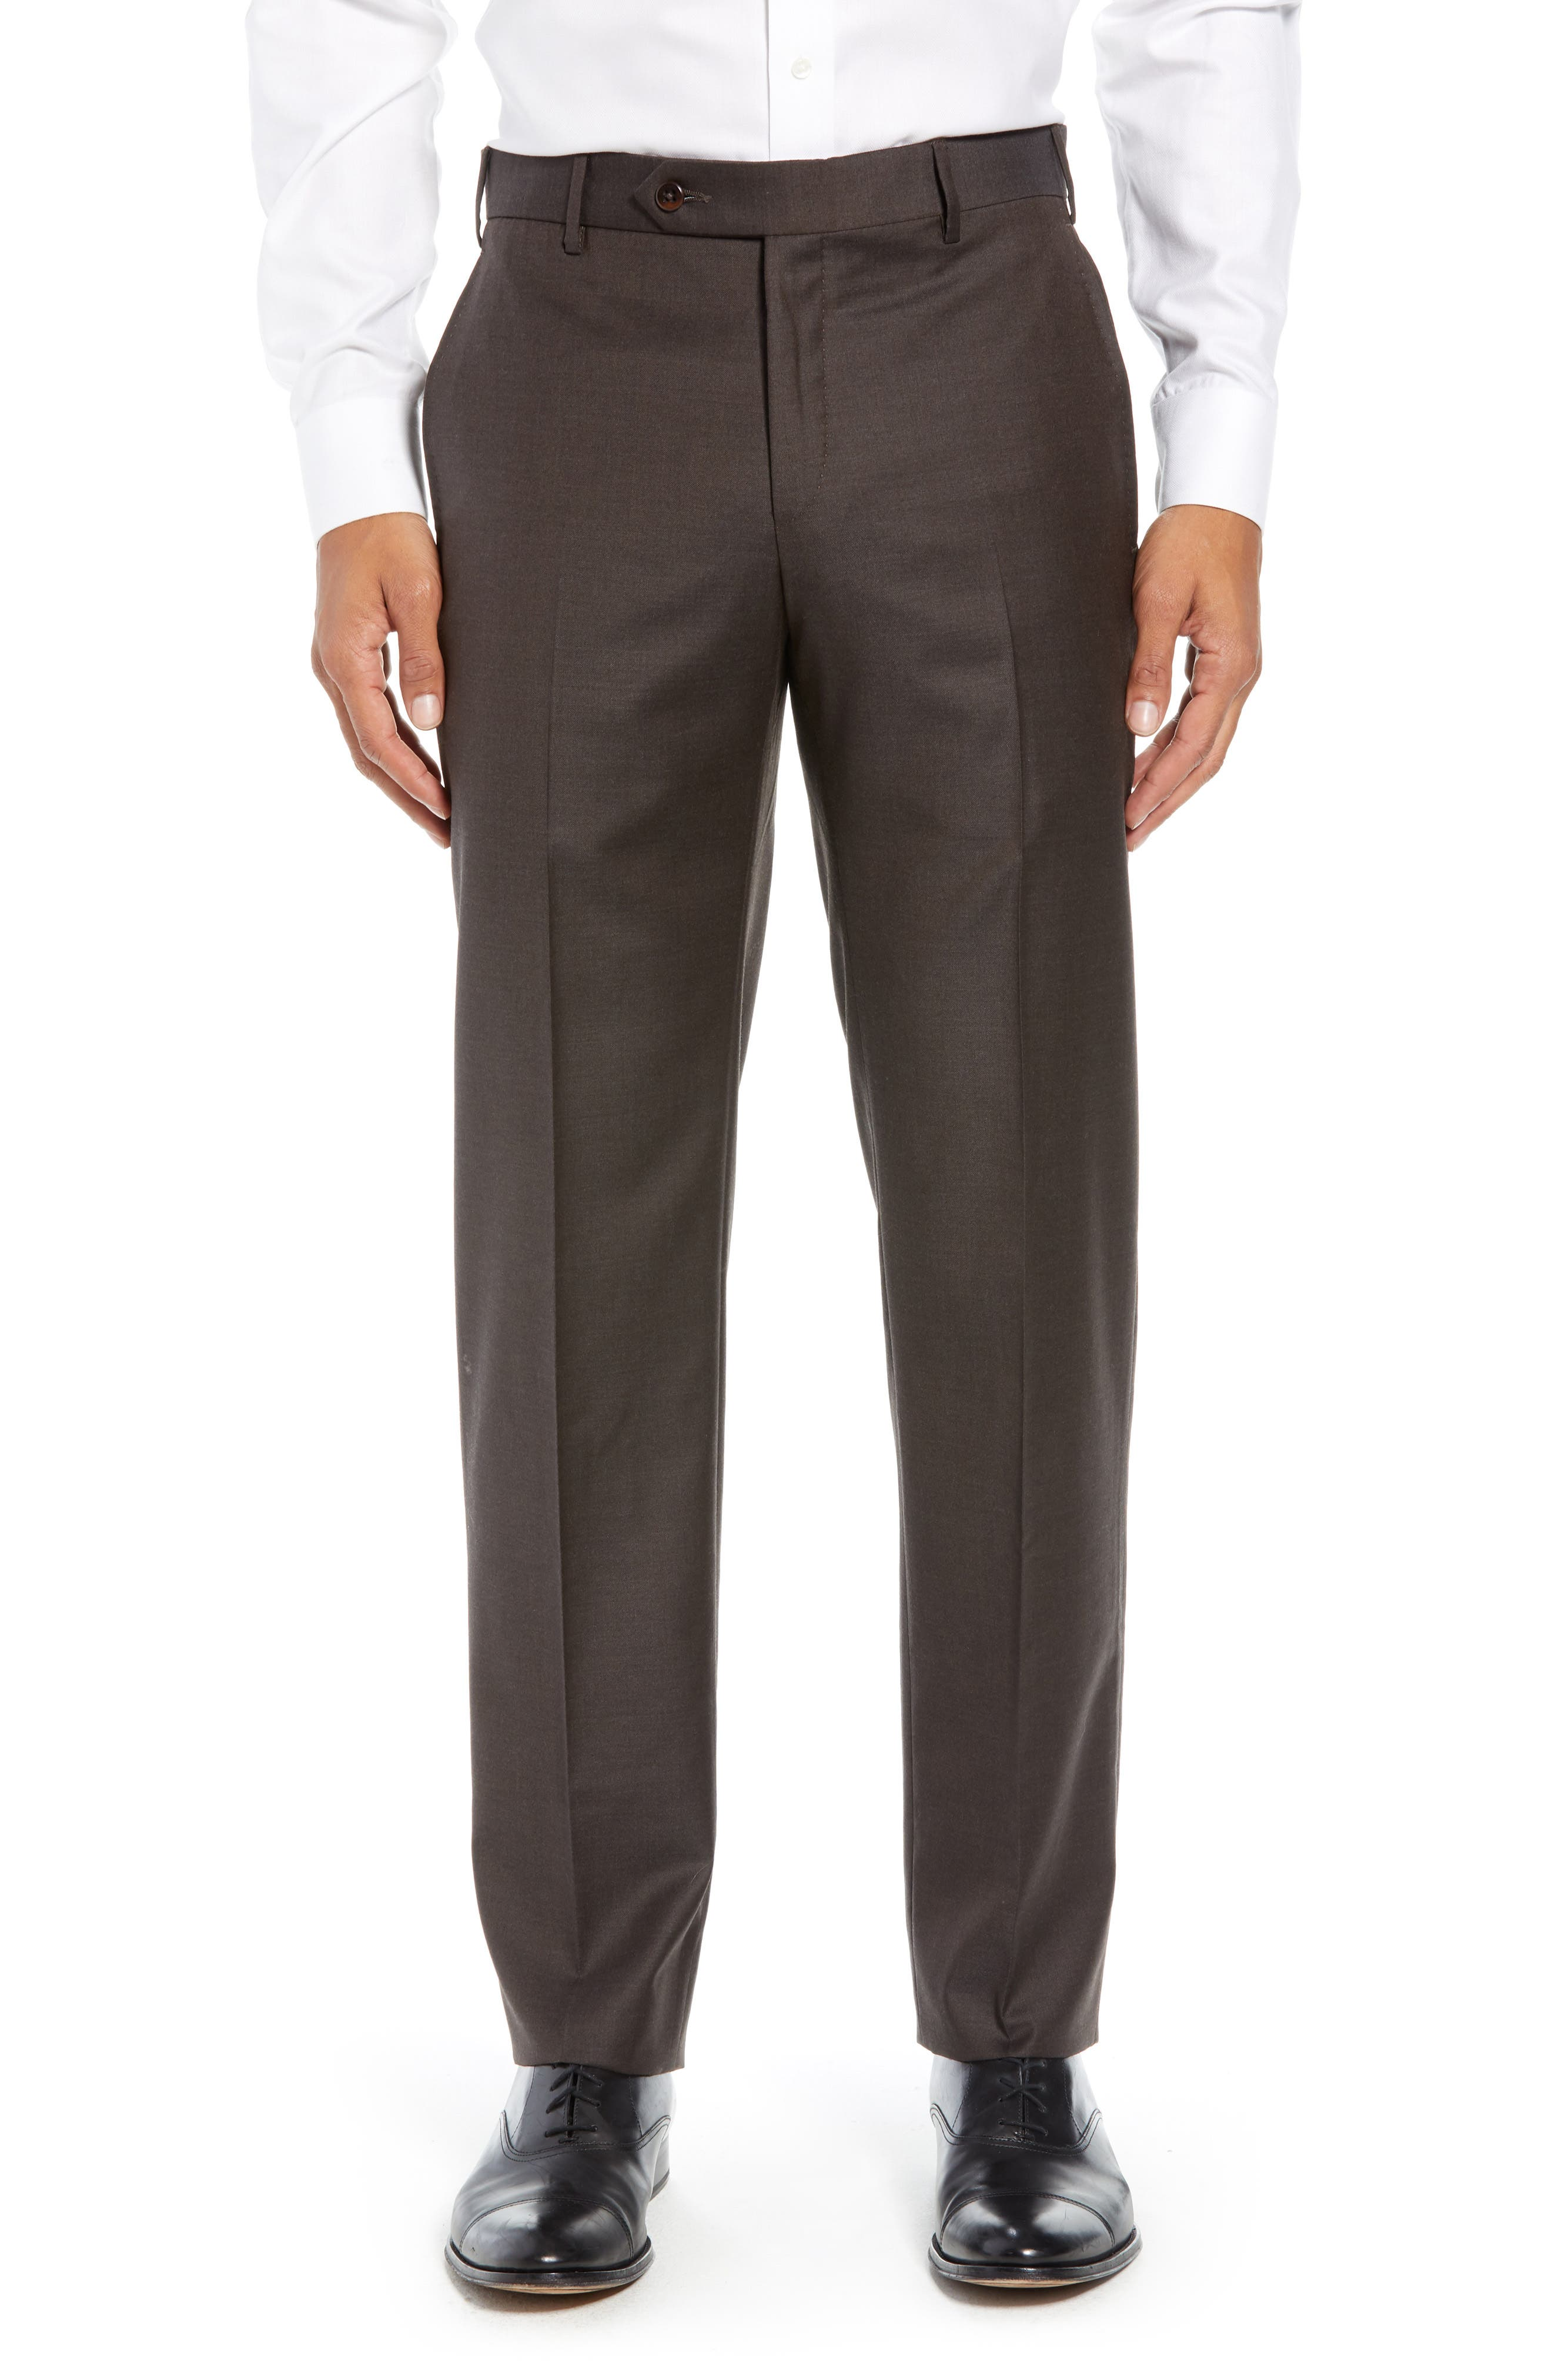 ZANELLA Parker Flat Front Solid Wool Trousers in Brown